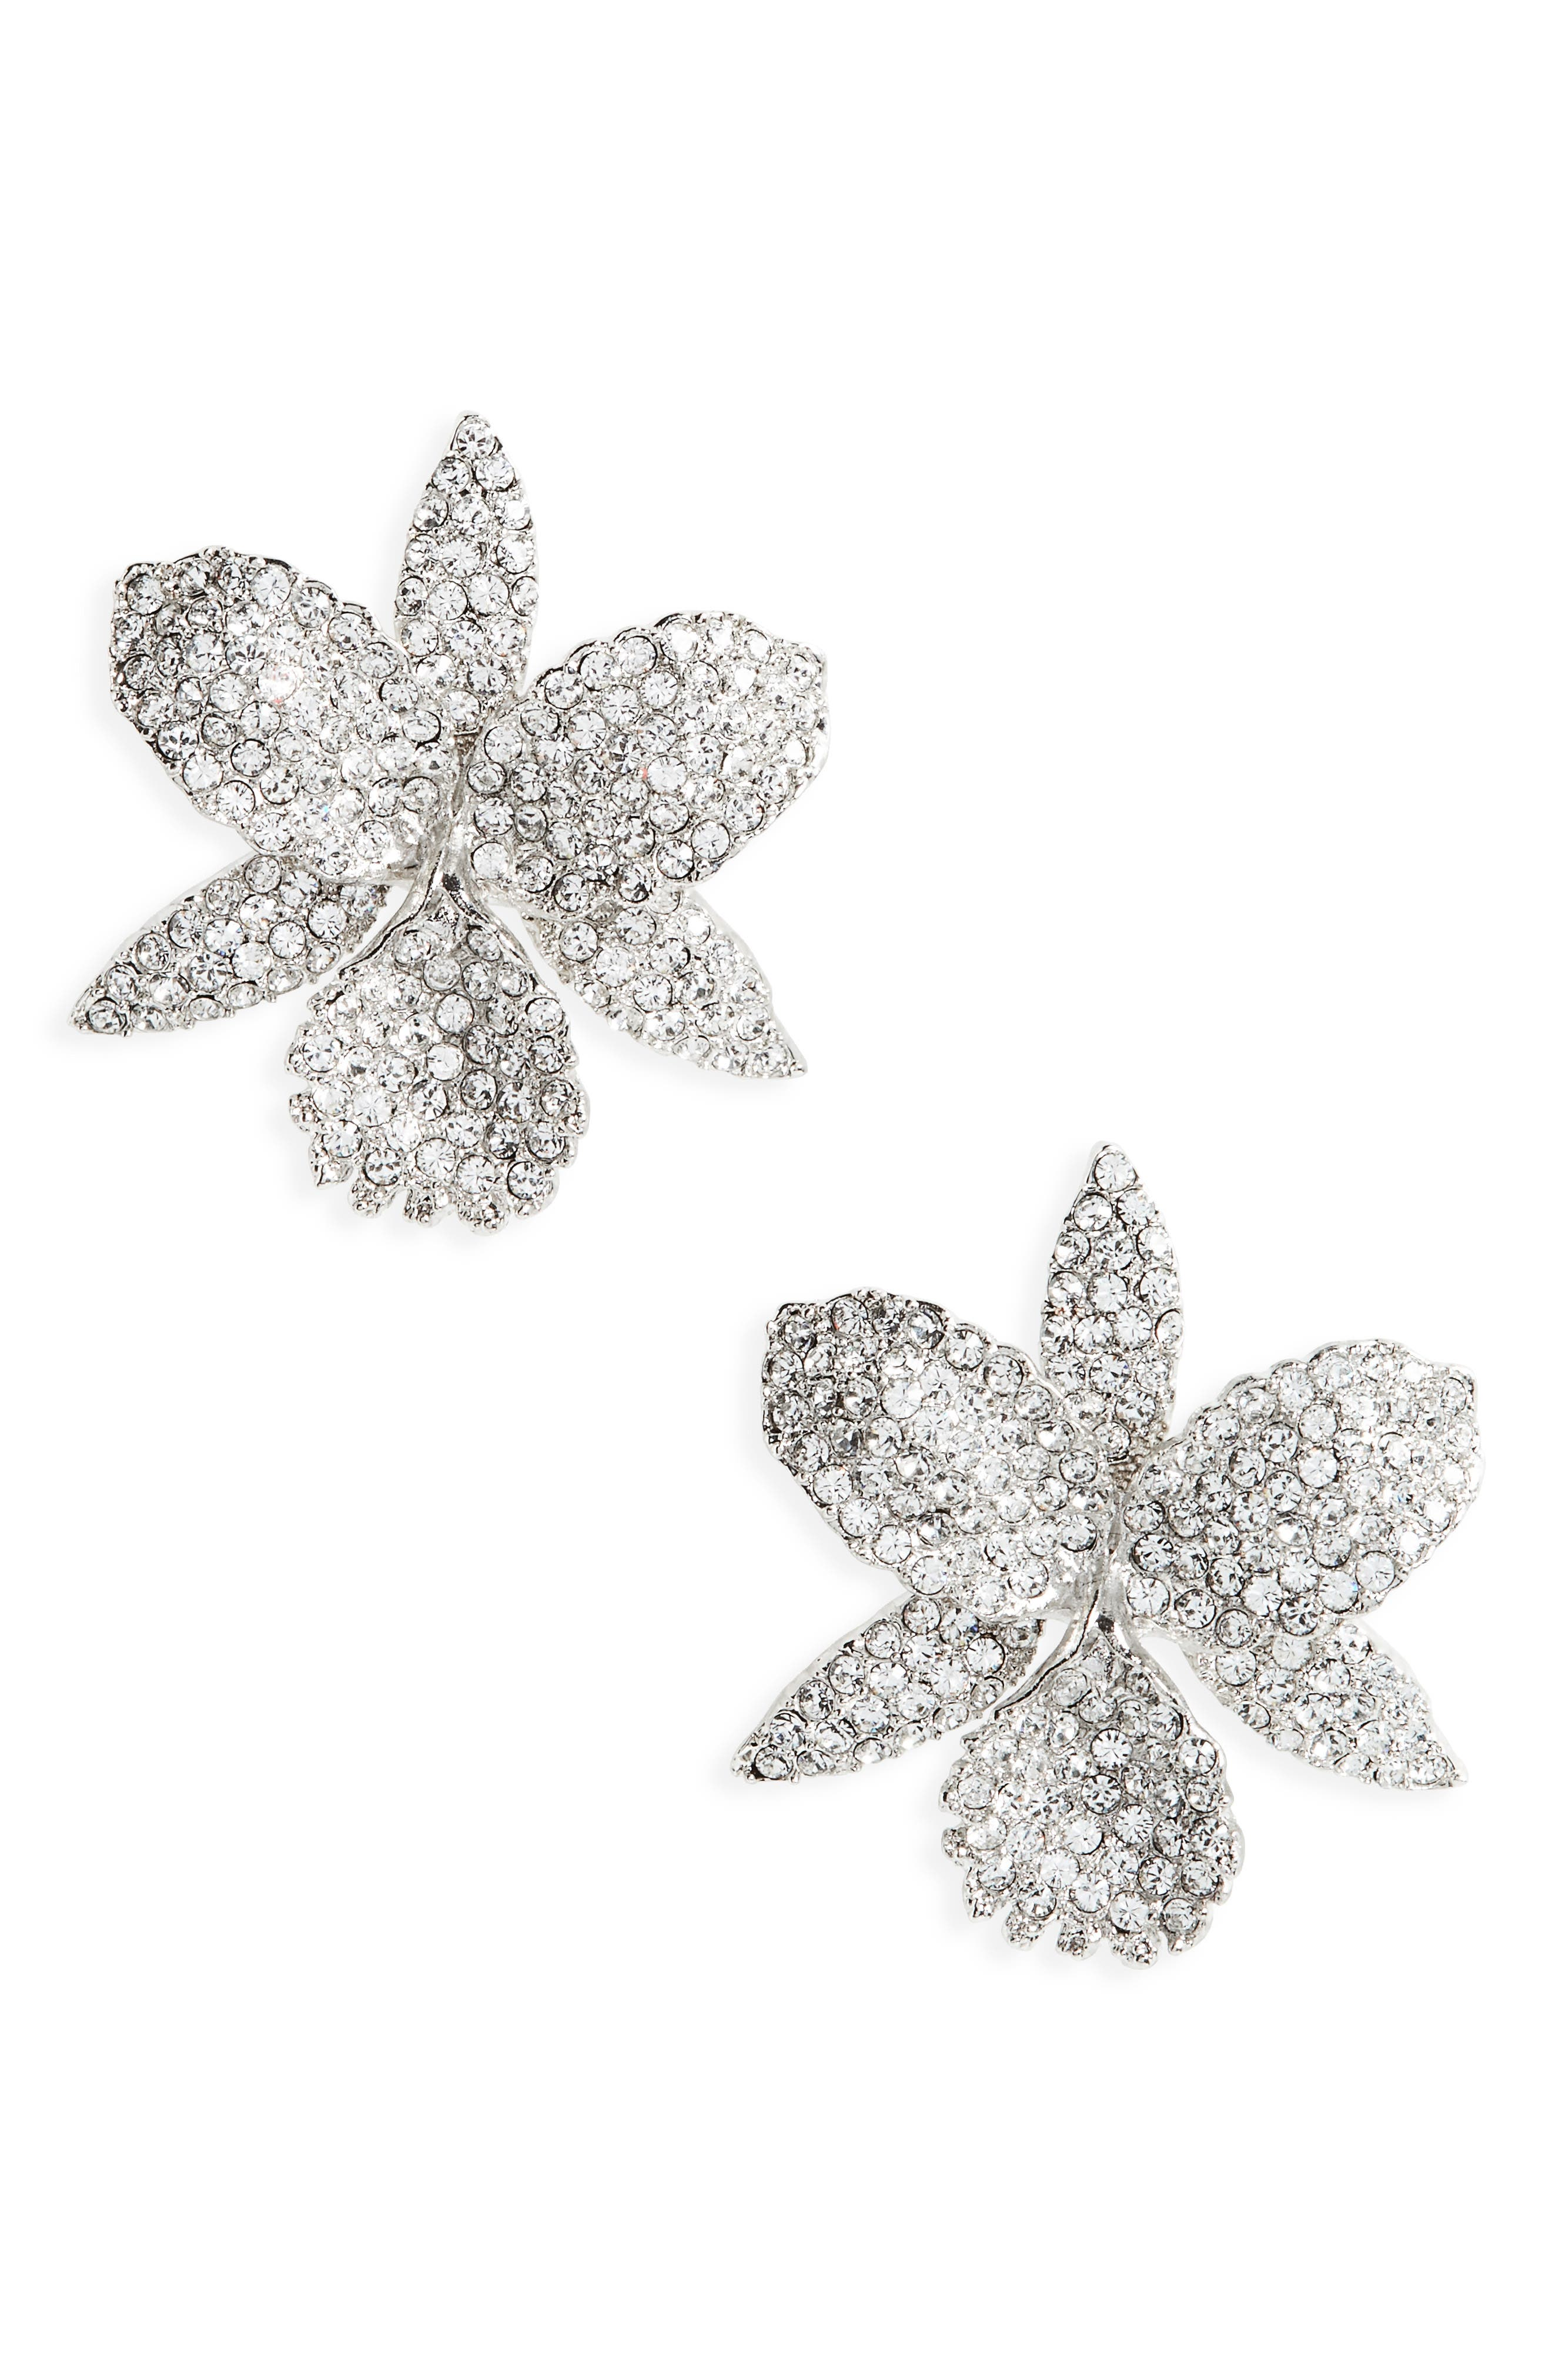 Large Orchid Stud Earrings,                             Main thumbnail 1, color,                             Silver